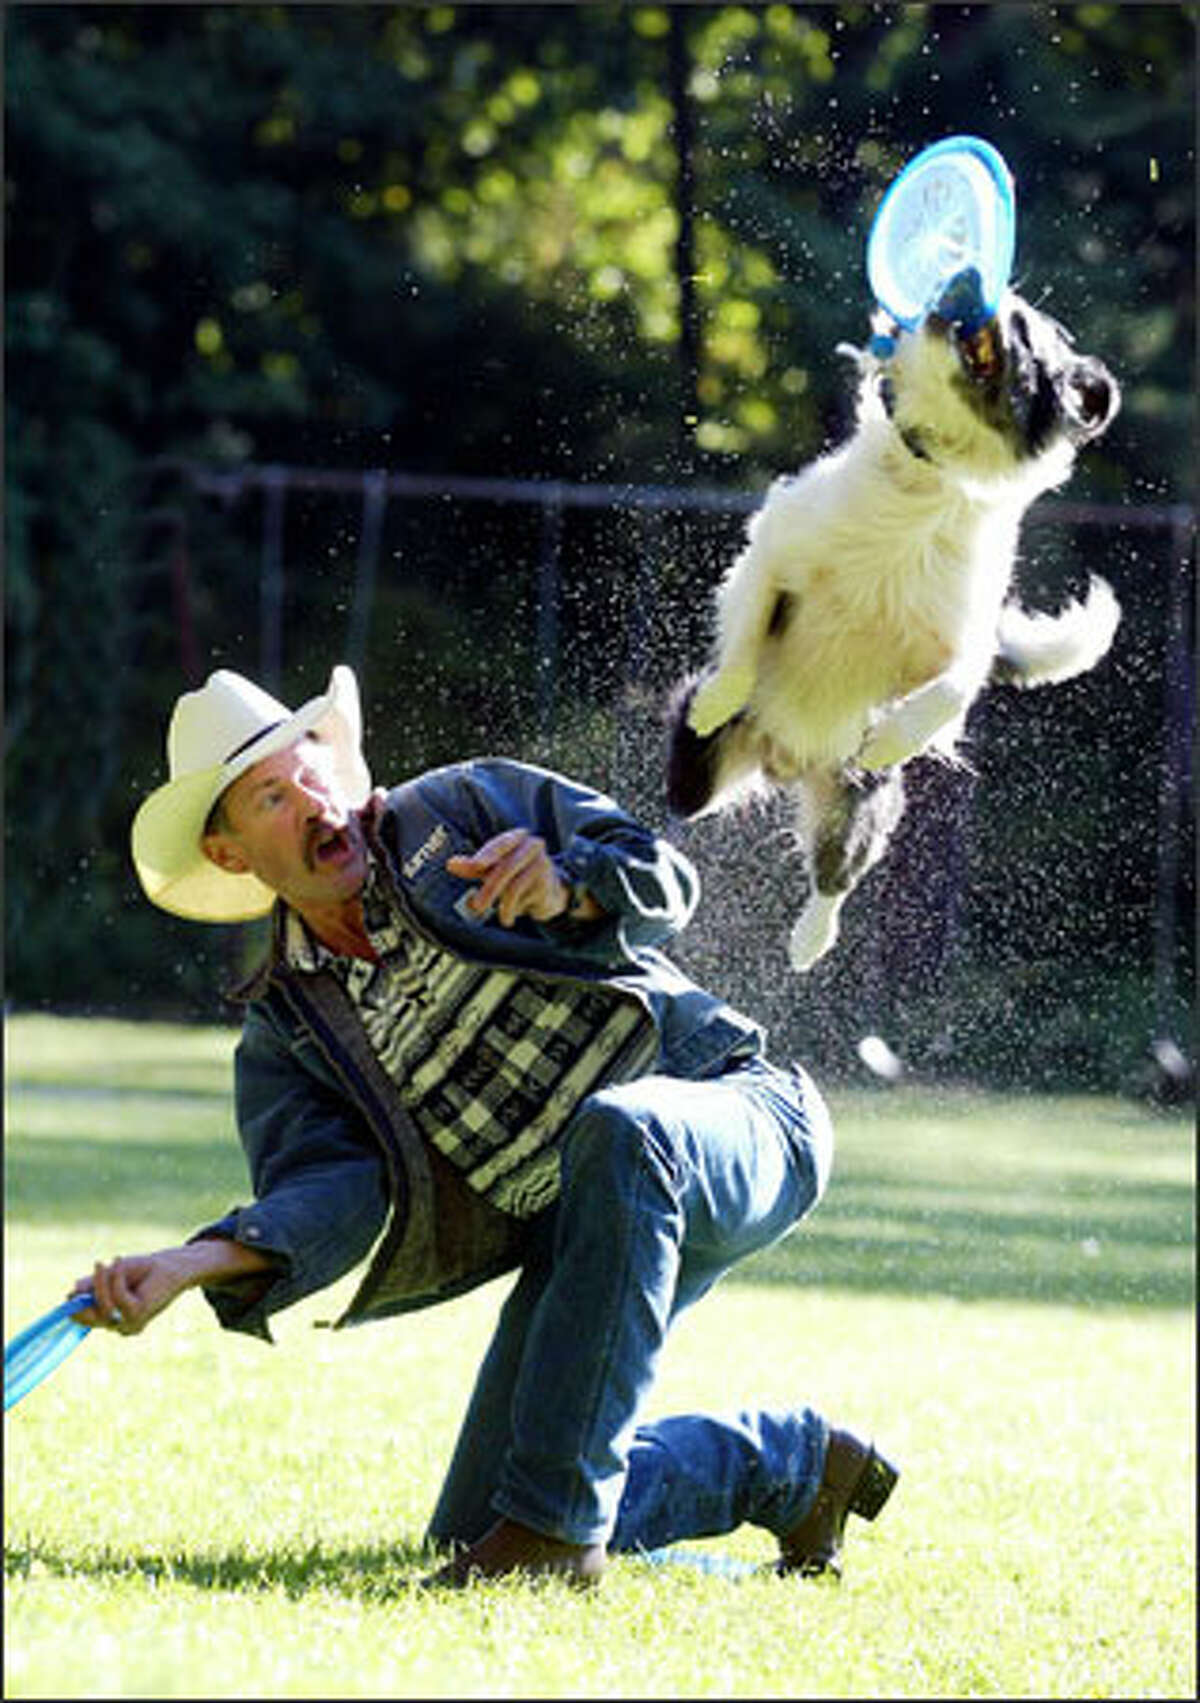 Ray Calhoun of Madrona works out with his border collie mix, Cordell. Calhoun, Cordell and Calhoun's other dog, Cowboy, are all headed to the world canine disc championships in Atlanta this weekend. (Editor's Note: Calhoun was incorrectly identified in the original version of this caption.)